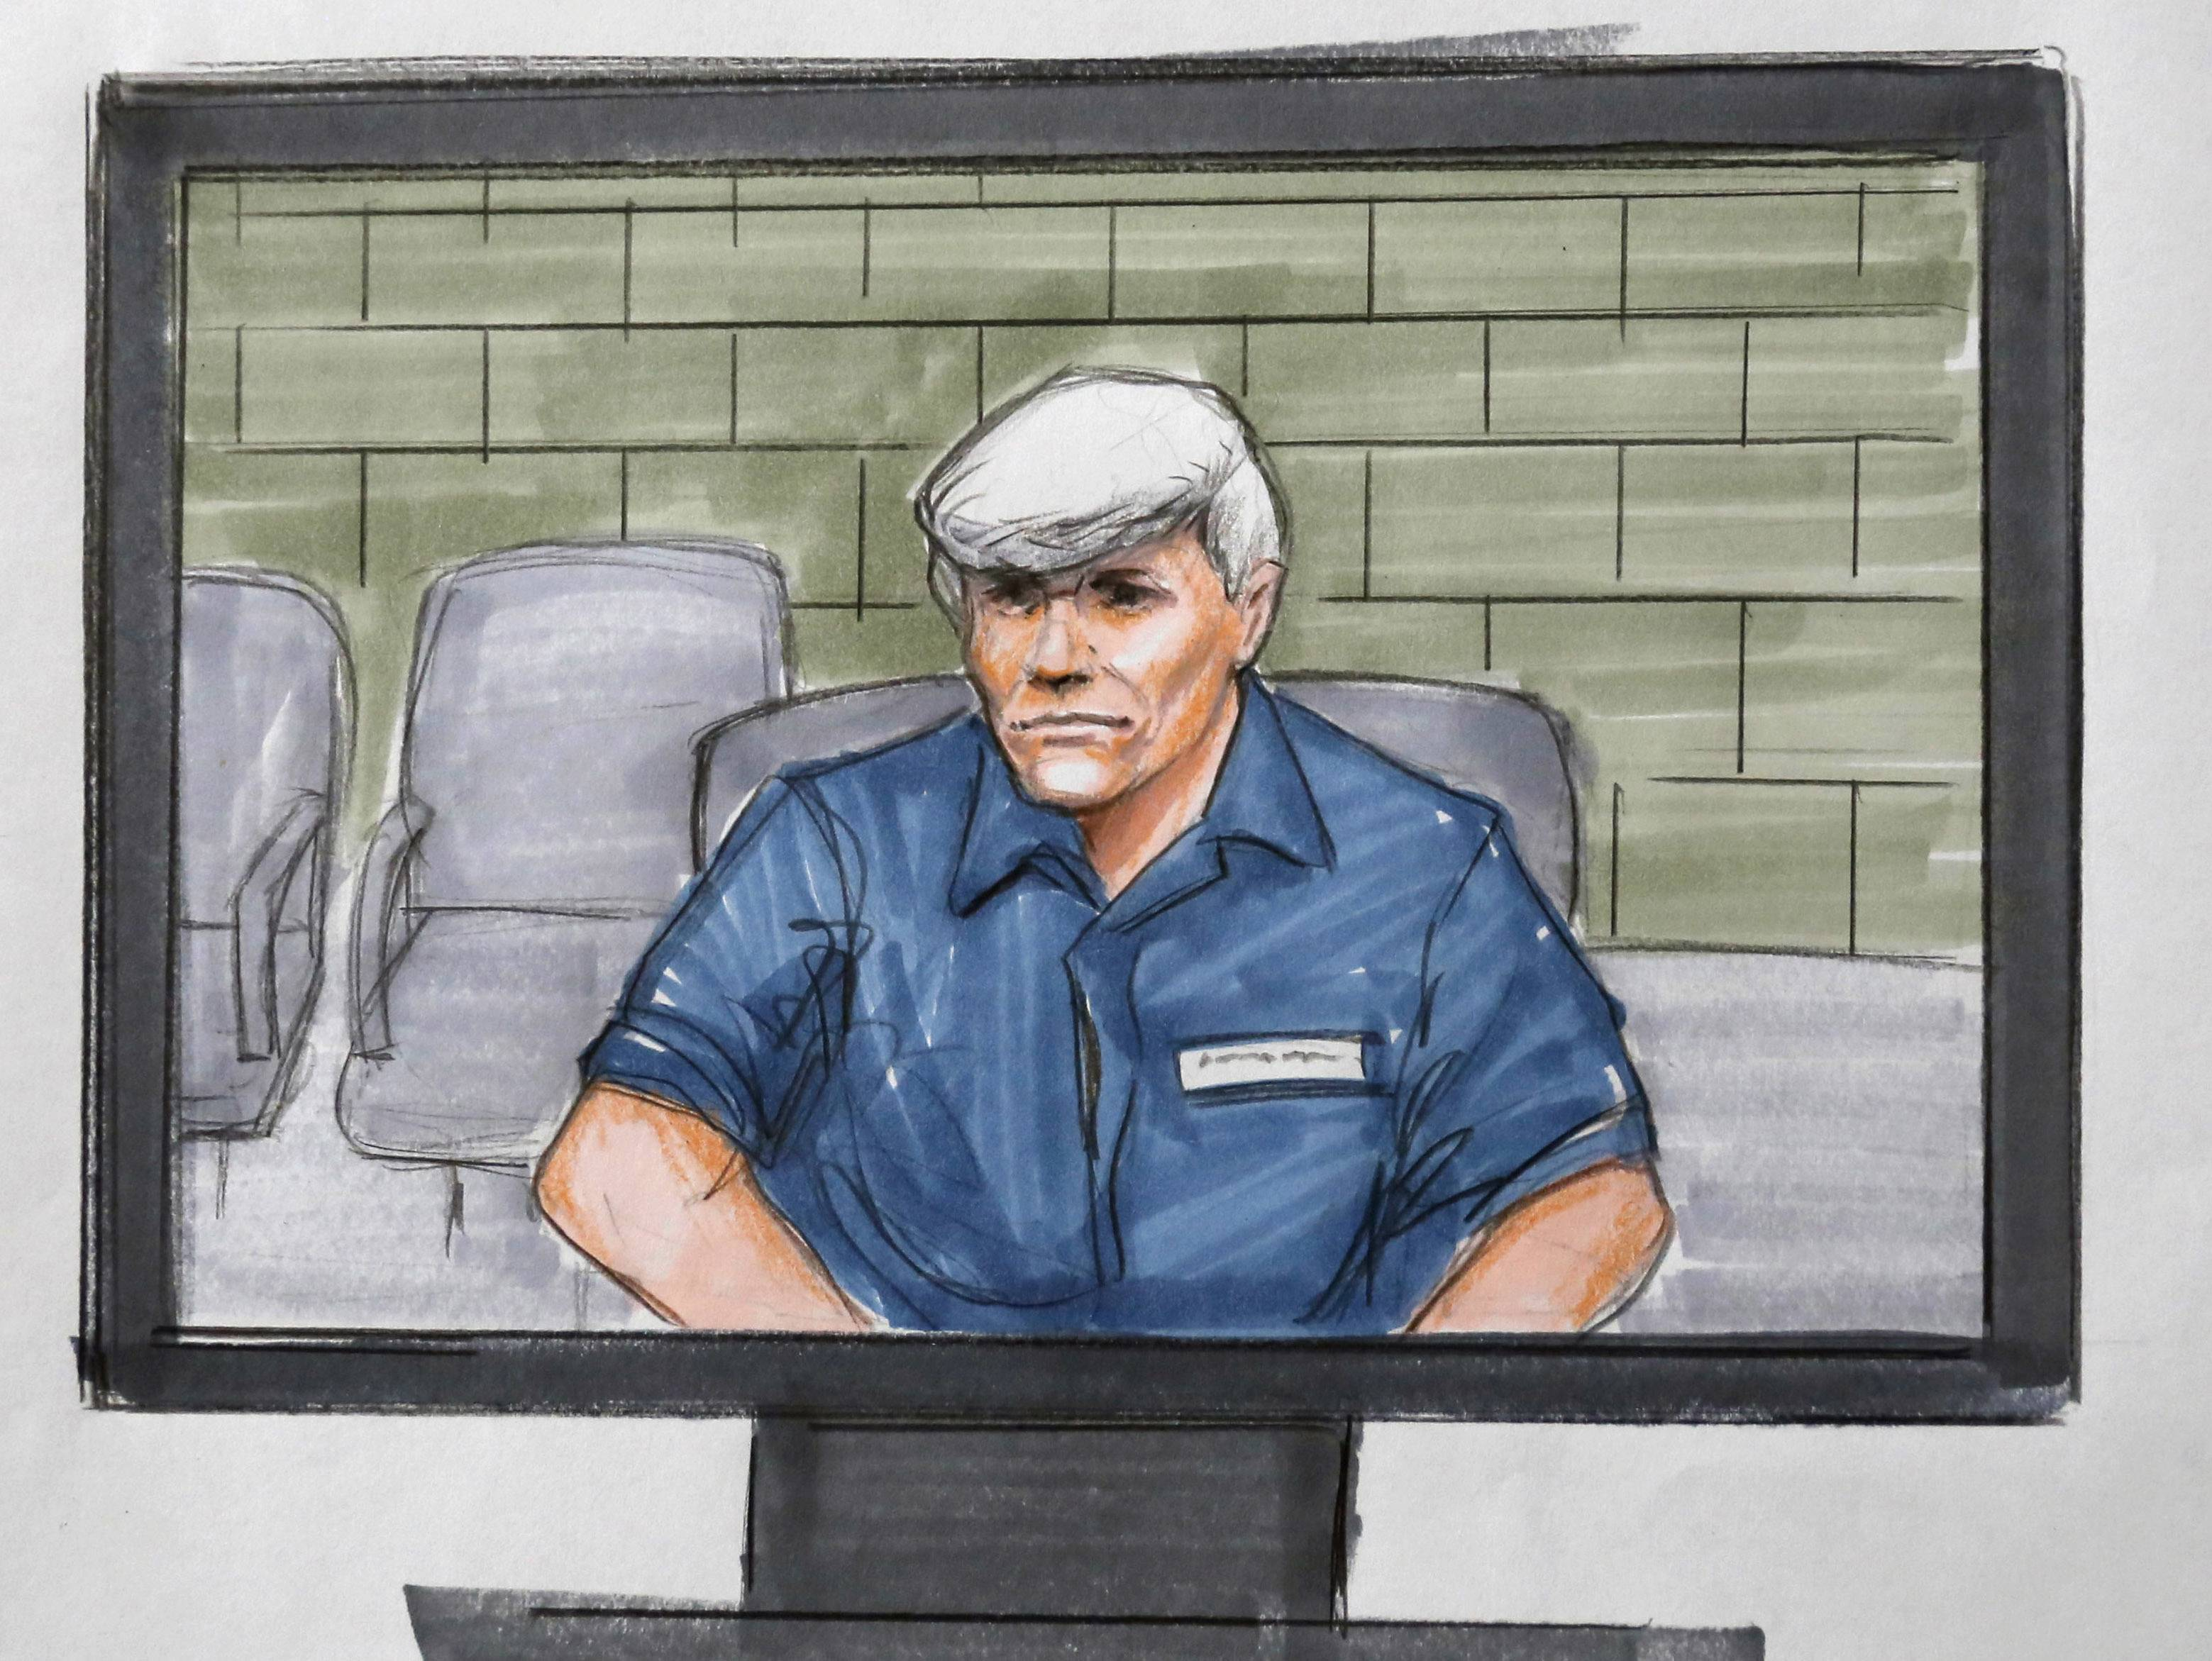 Blagojevich's 14-year prison term remains; wife lashes out at judge